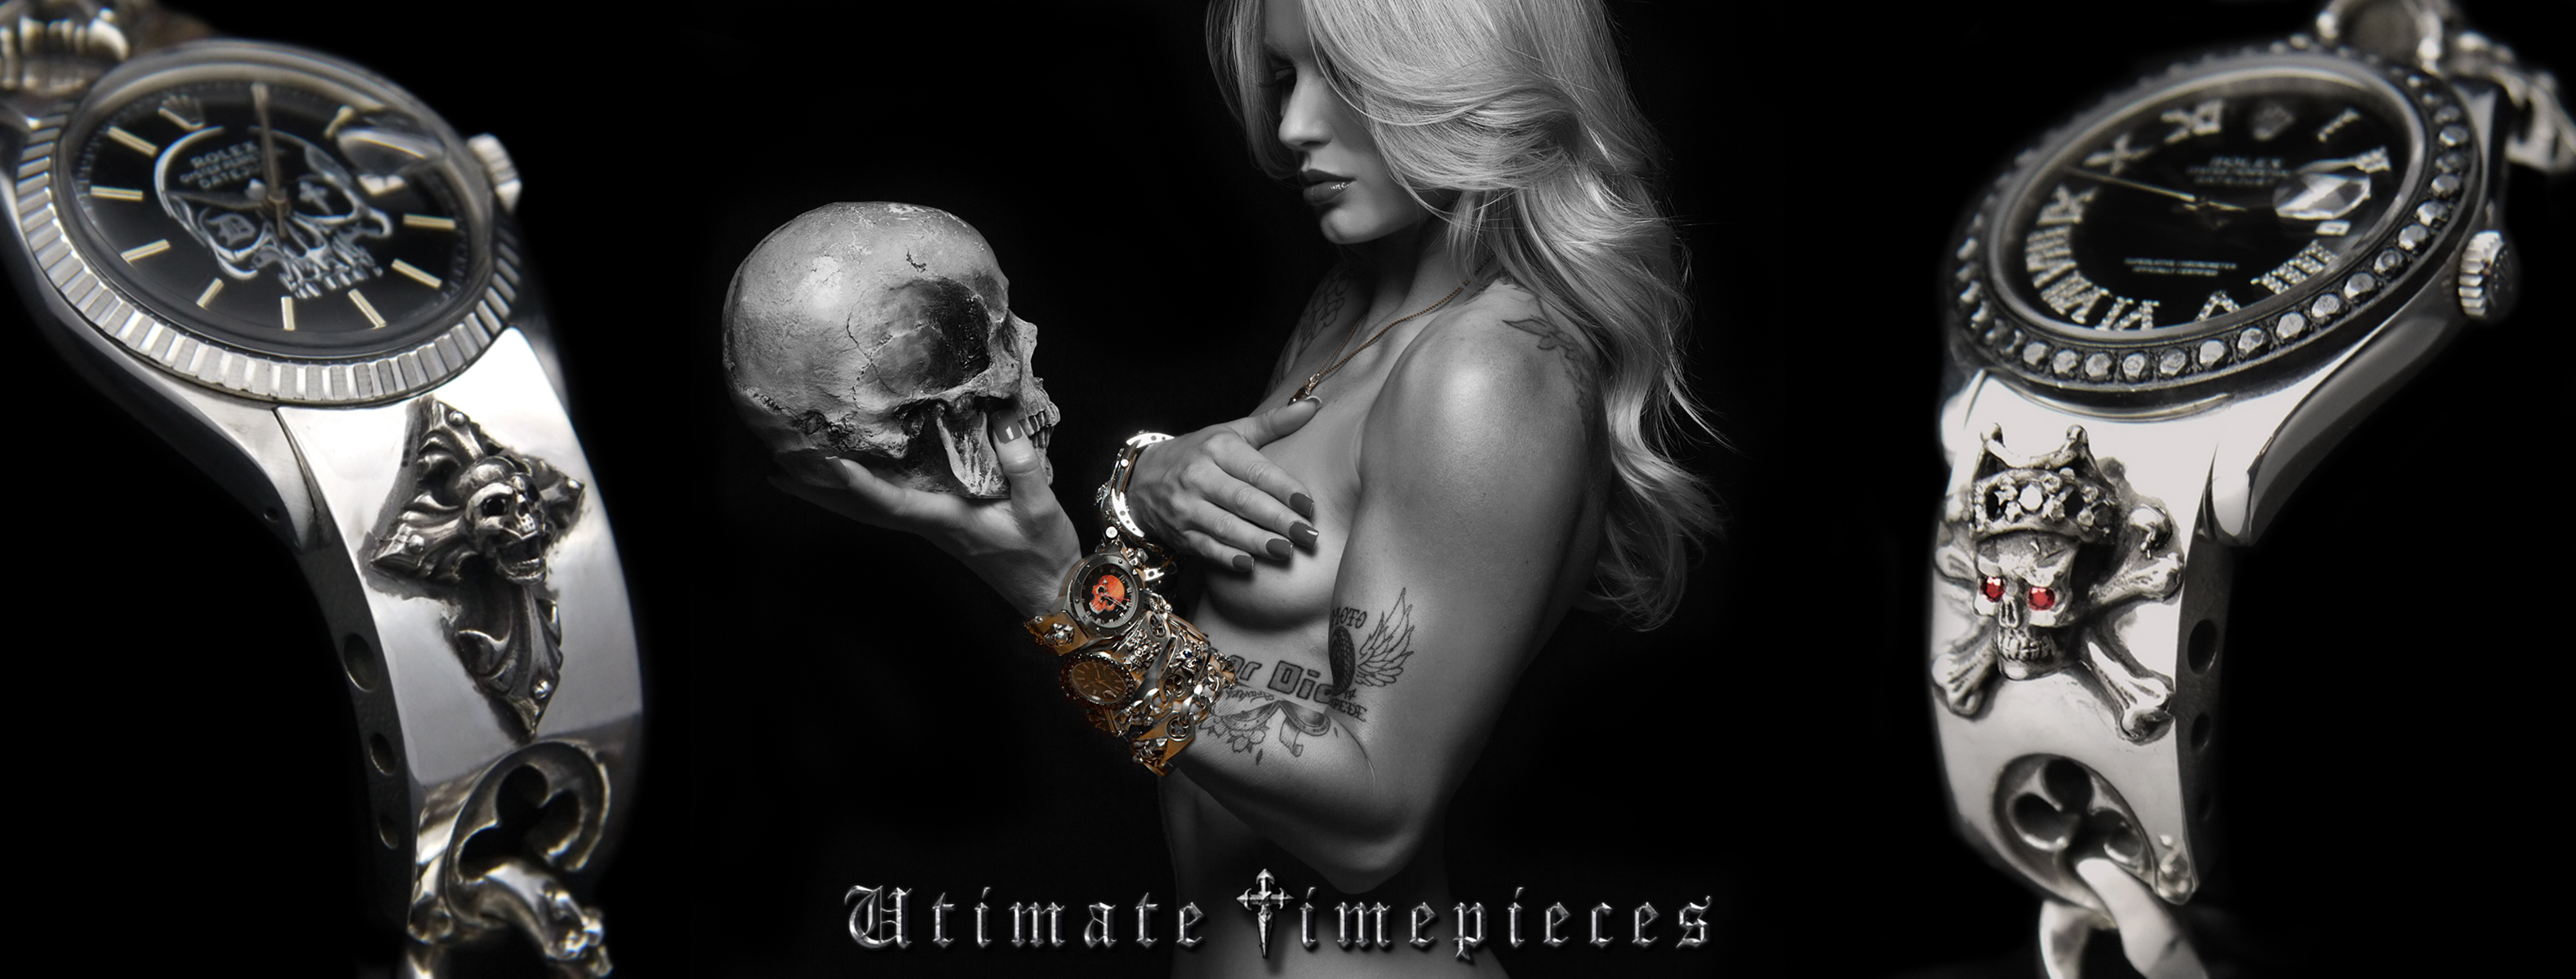 dark-triumph-fb-cover-stephanie-skull.jpg